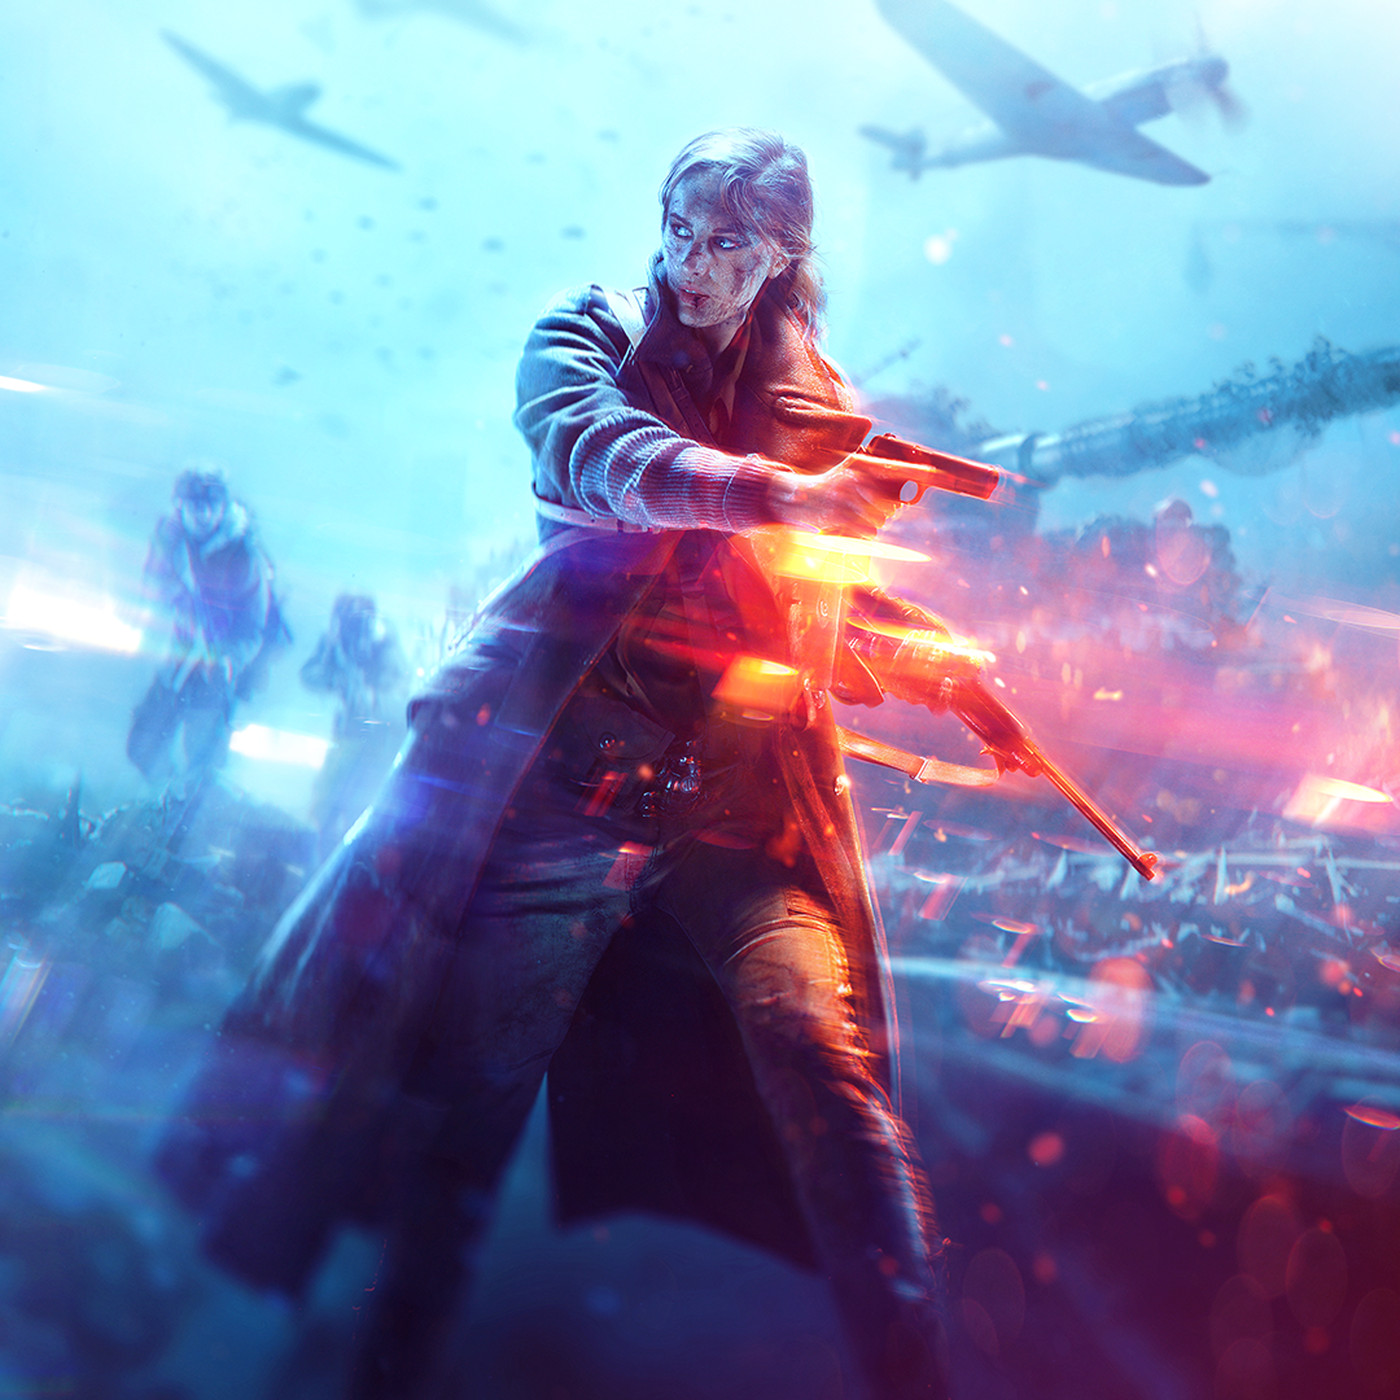 Ea Announces New Battlefield Mobile Game Launching In 2022 The Verge